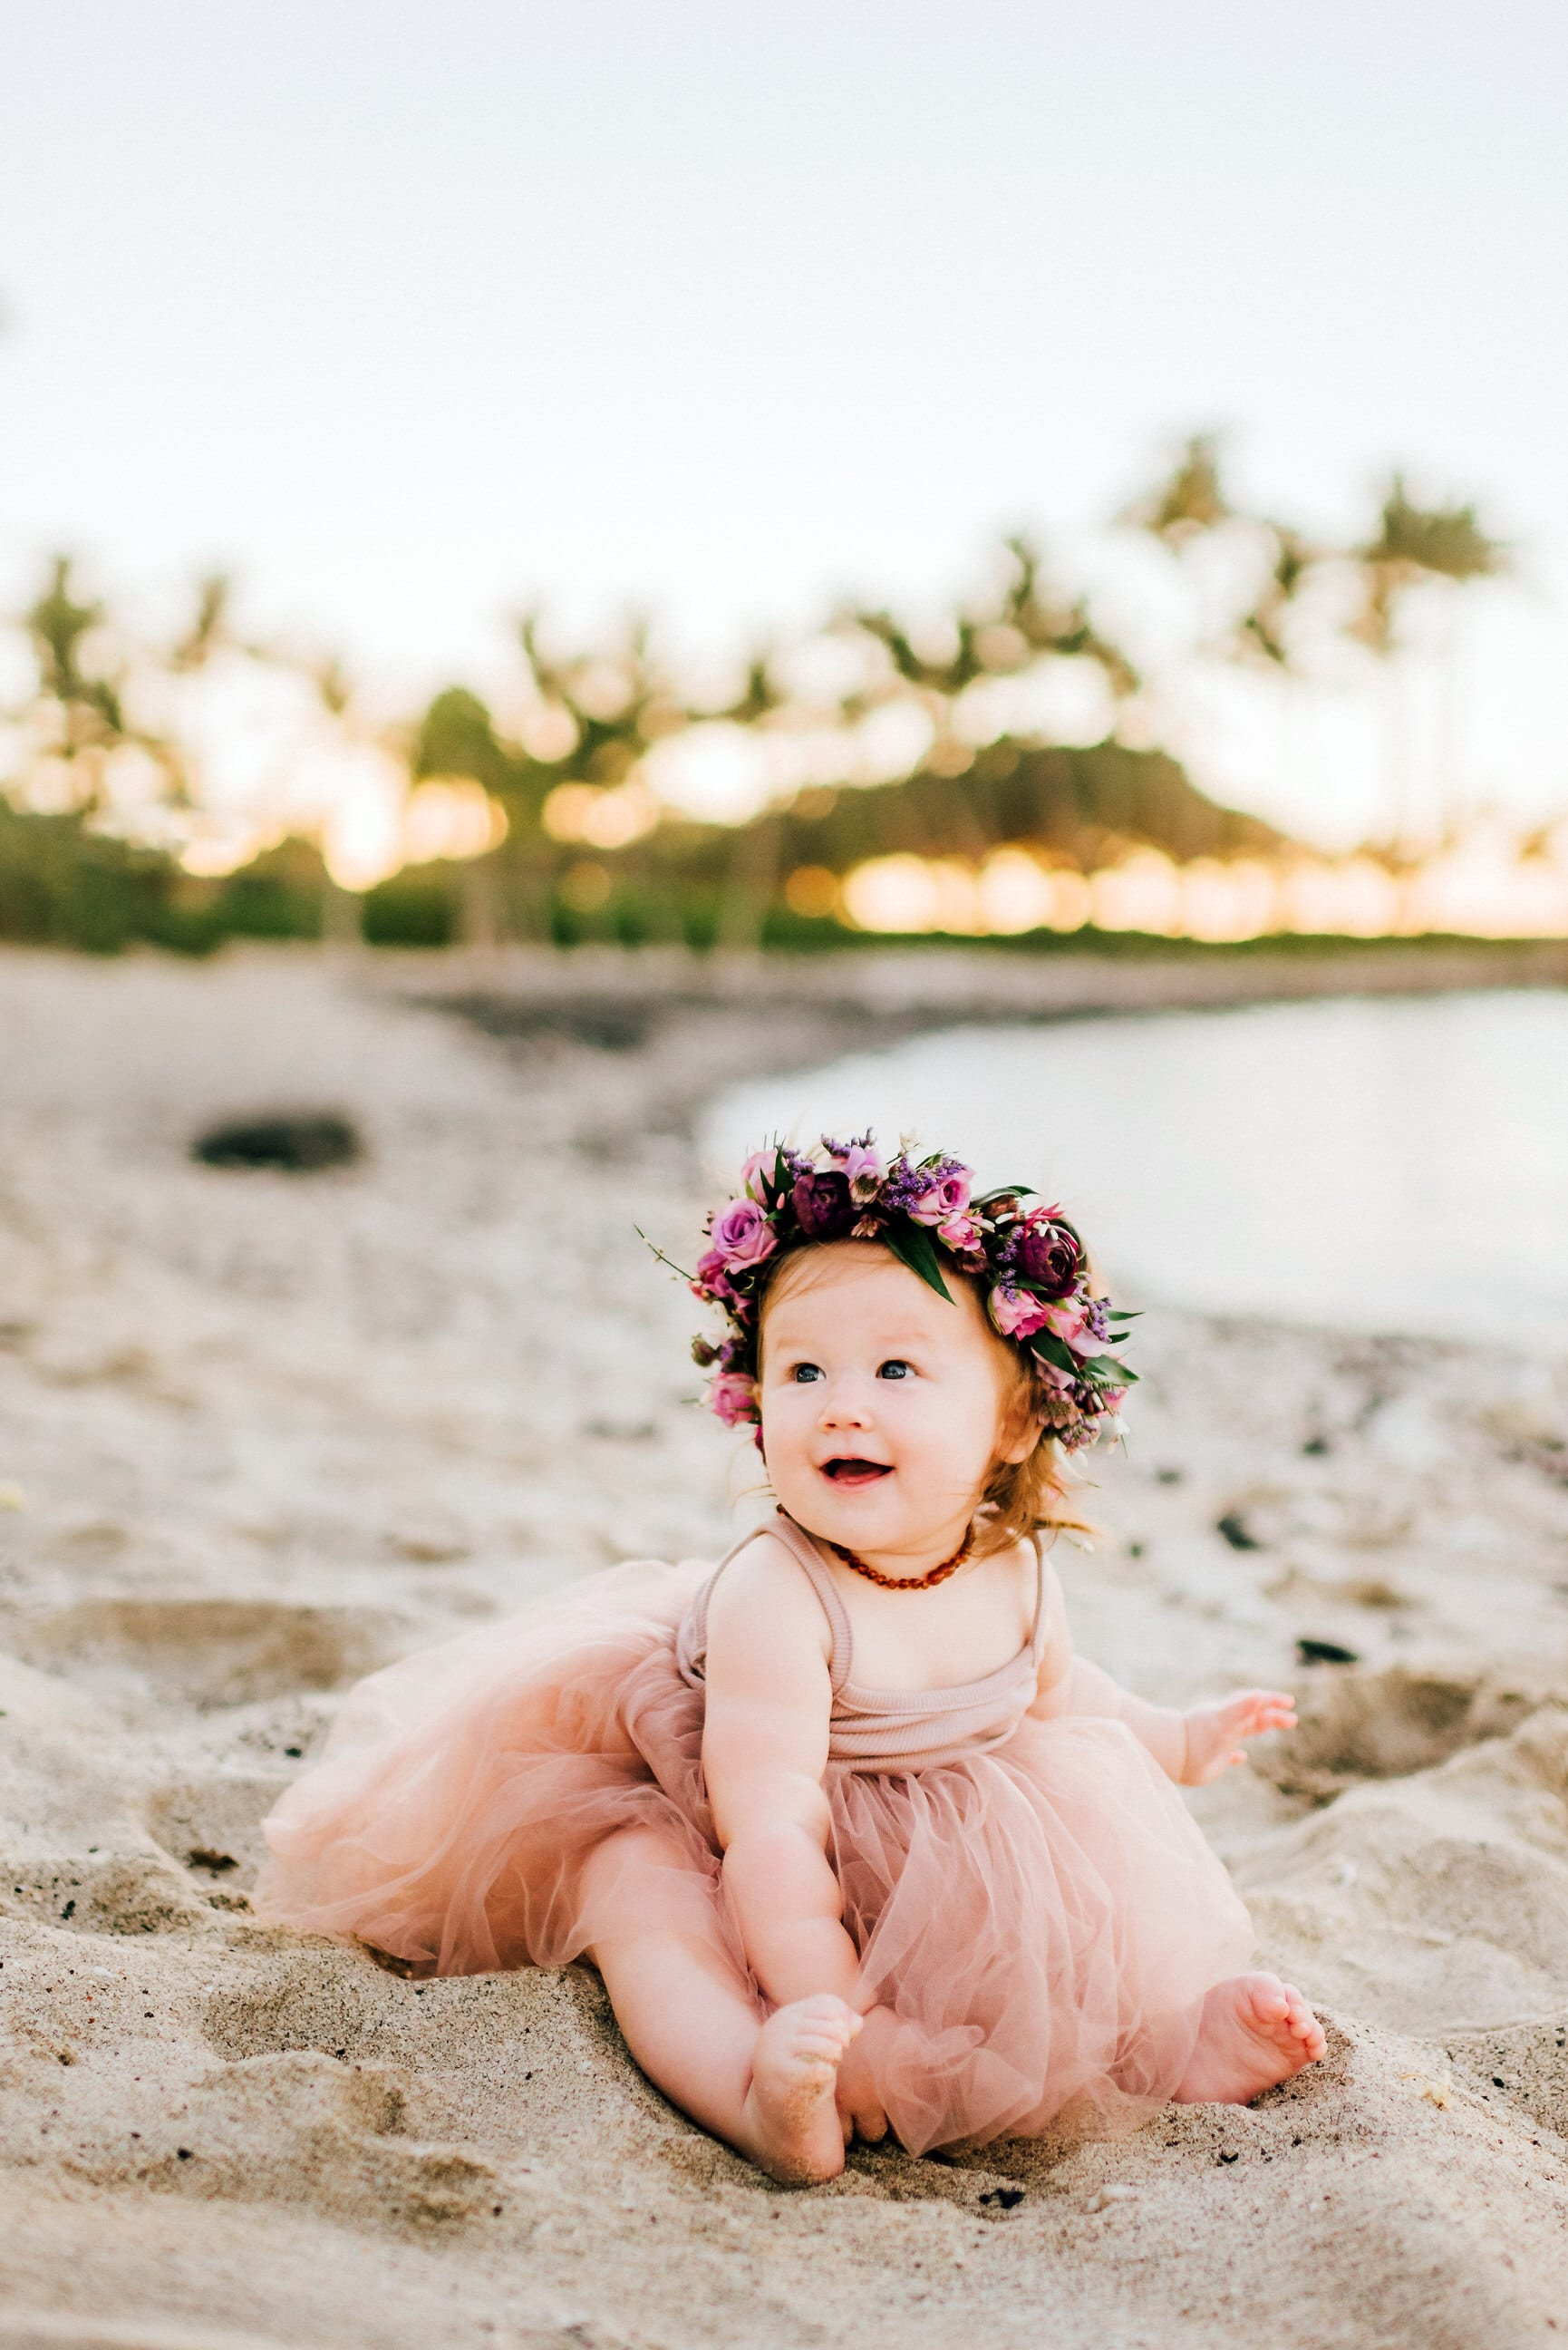 Waikoloa-Family-Photos-Hawaii-Sunset-2.jpg